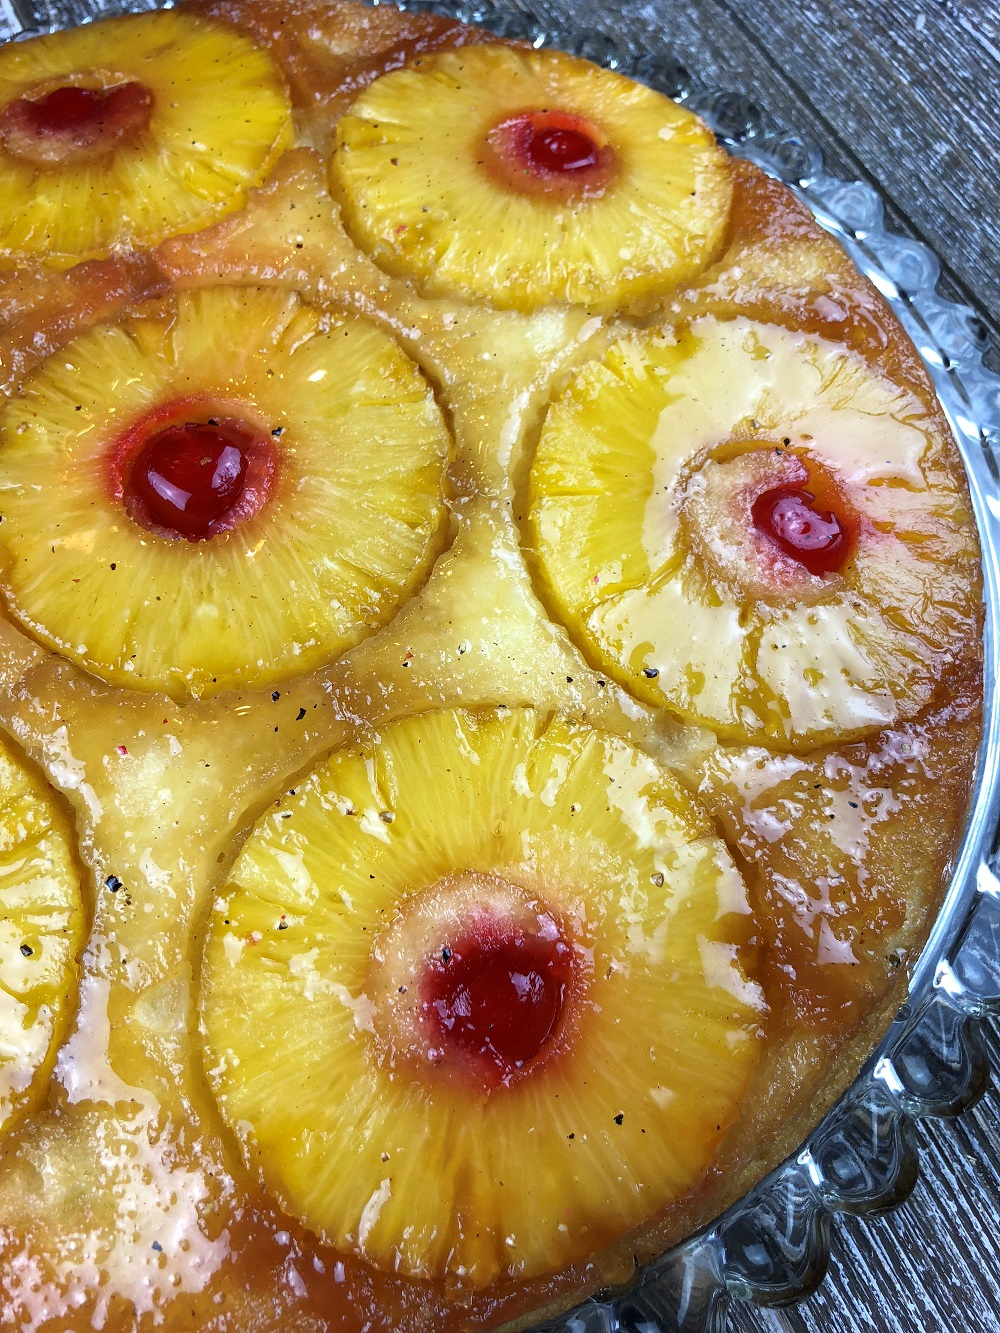 Recipes For Pineapple Upside Down Cake In Iron Skillet